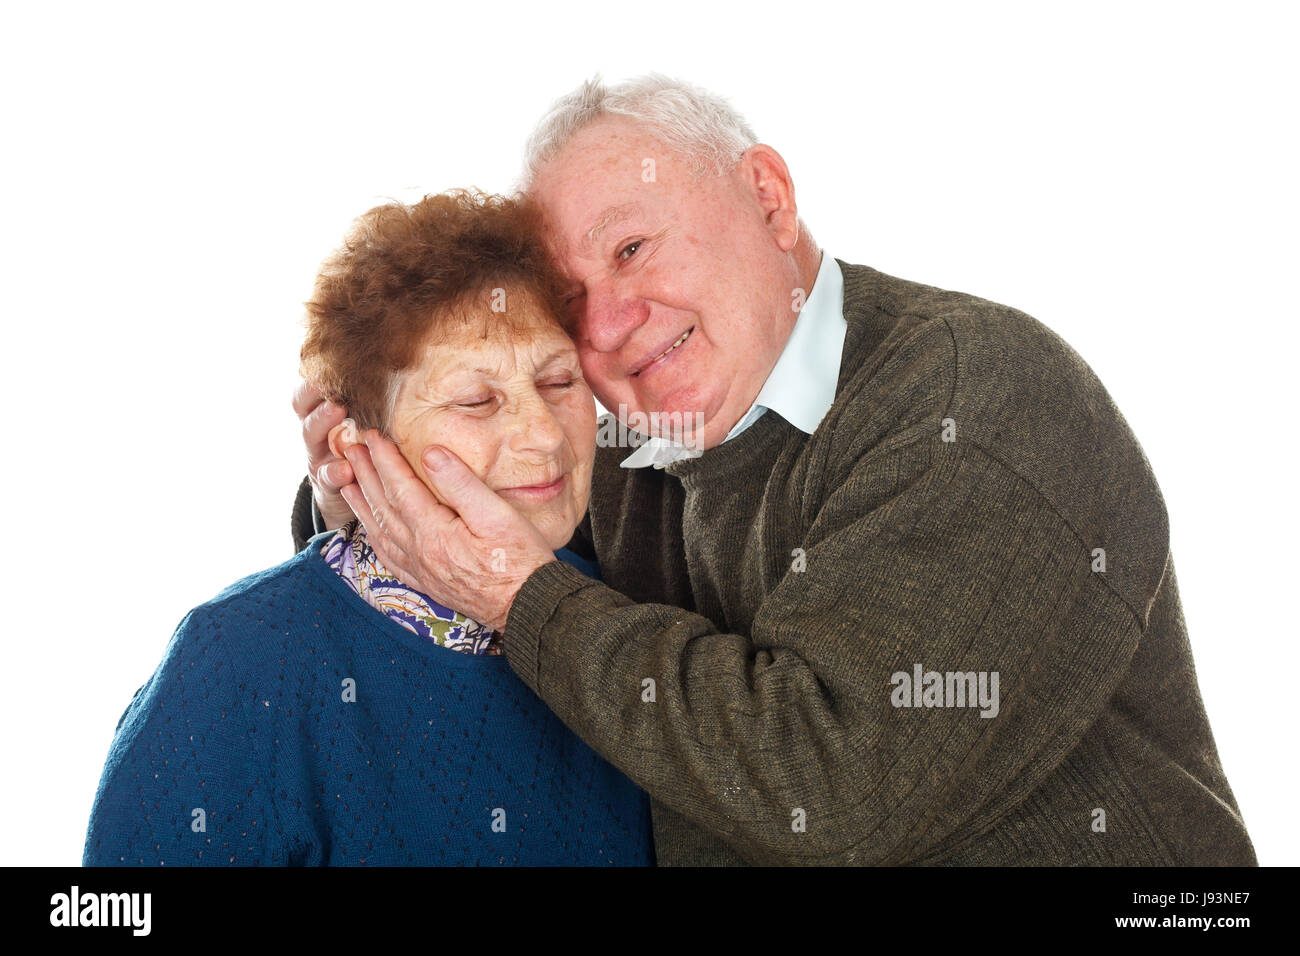 Picture of an old couple hugging each other - isolated background - Stock Image